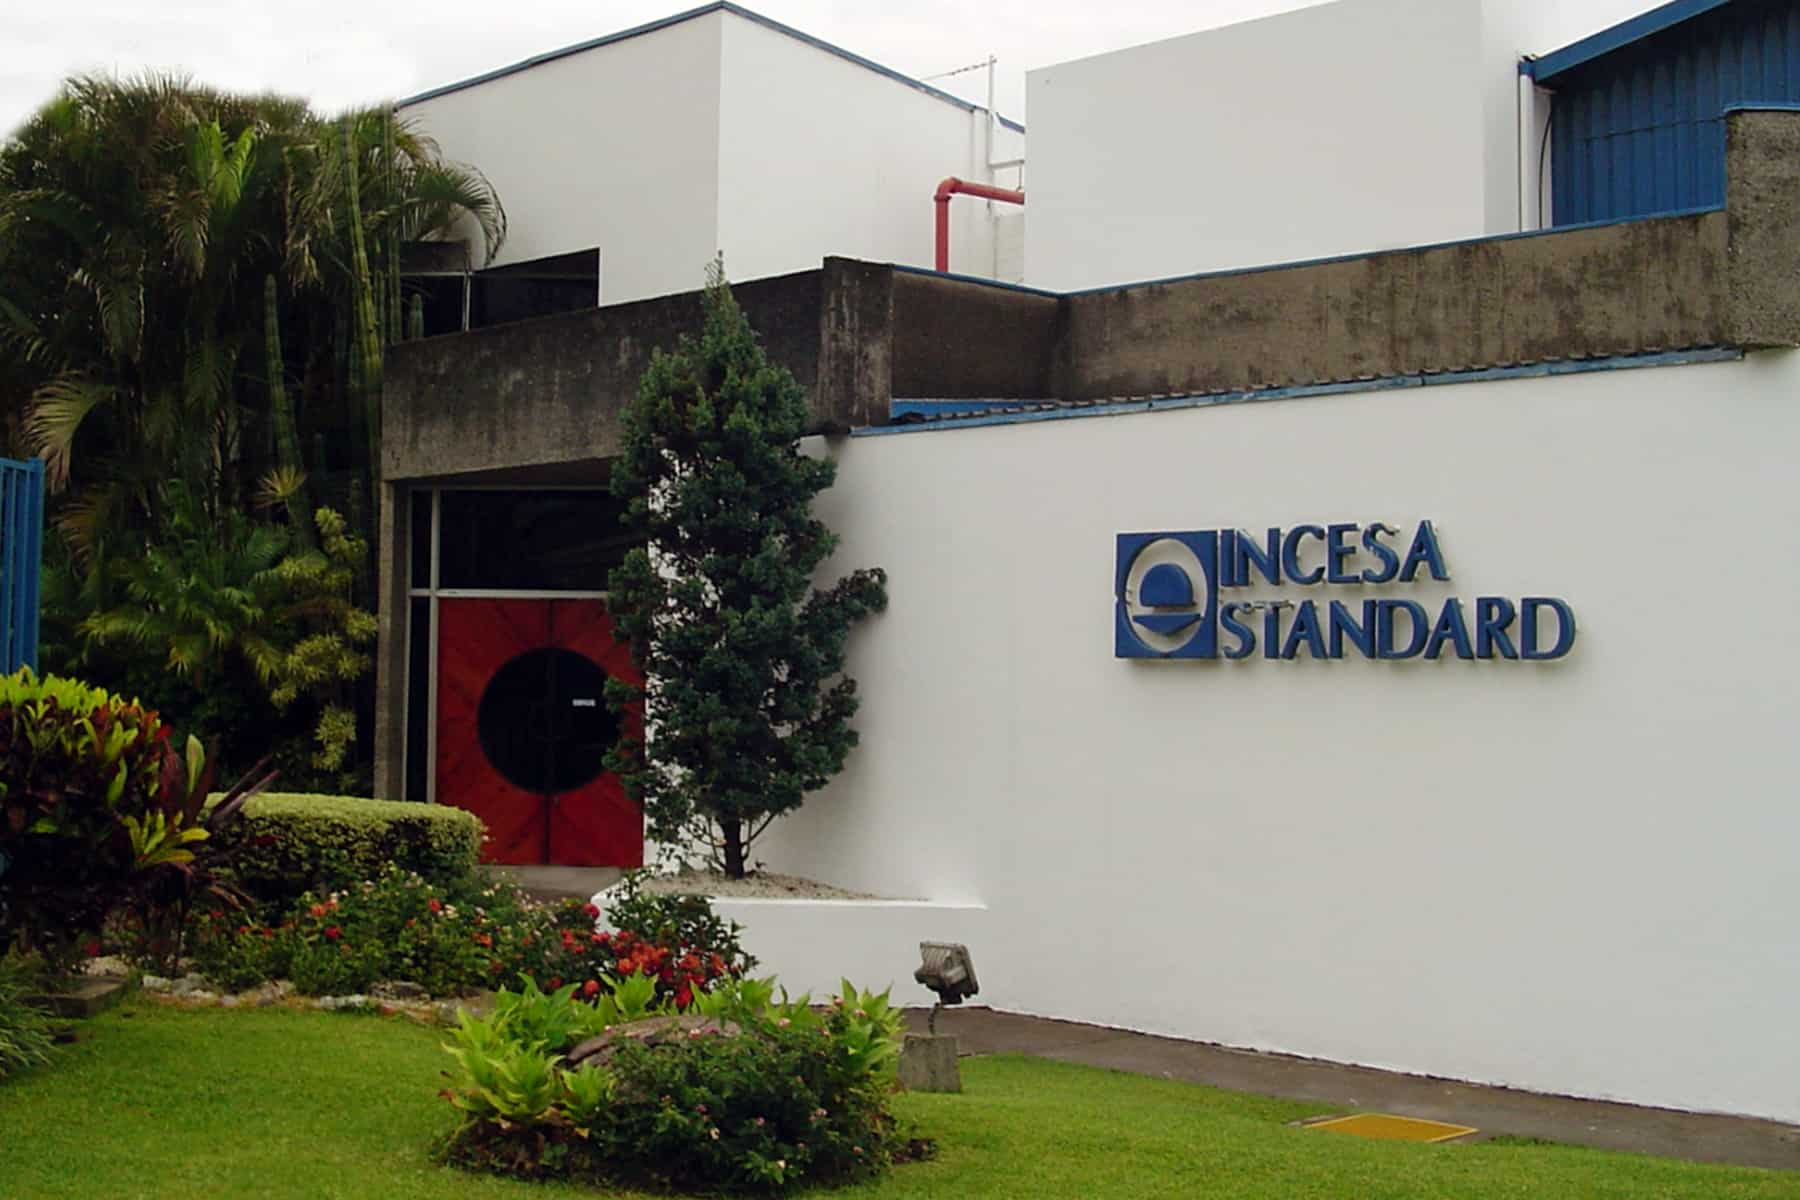 Incesa Standard facilities